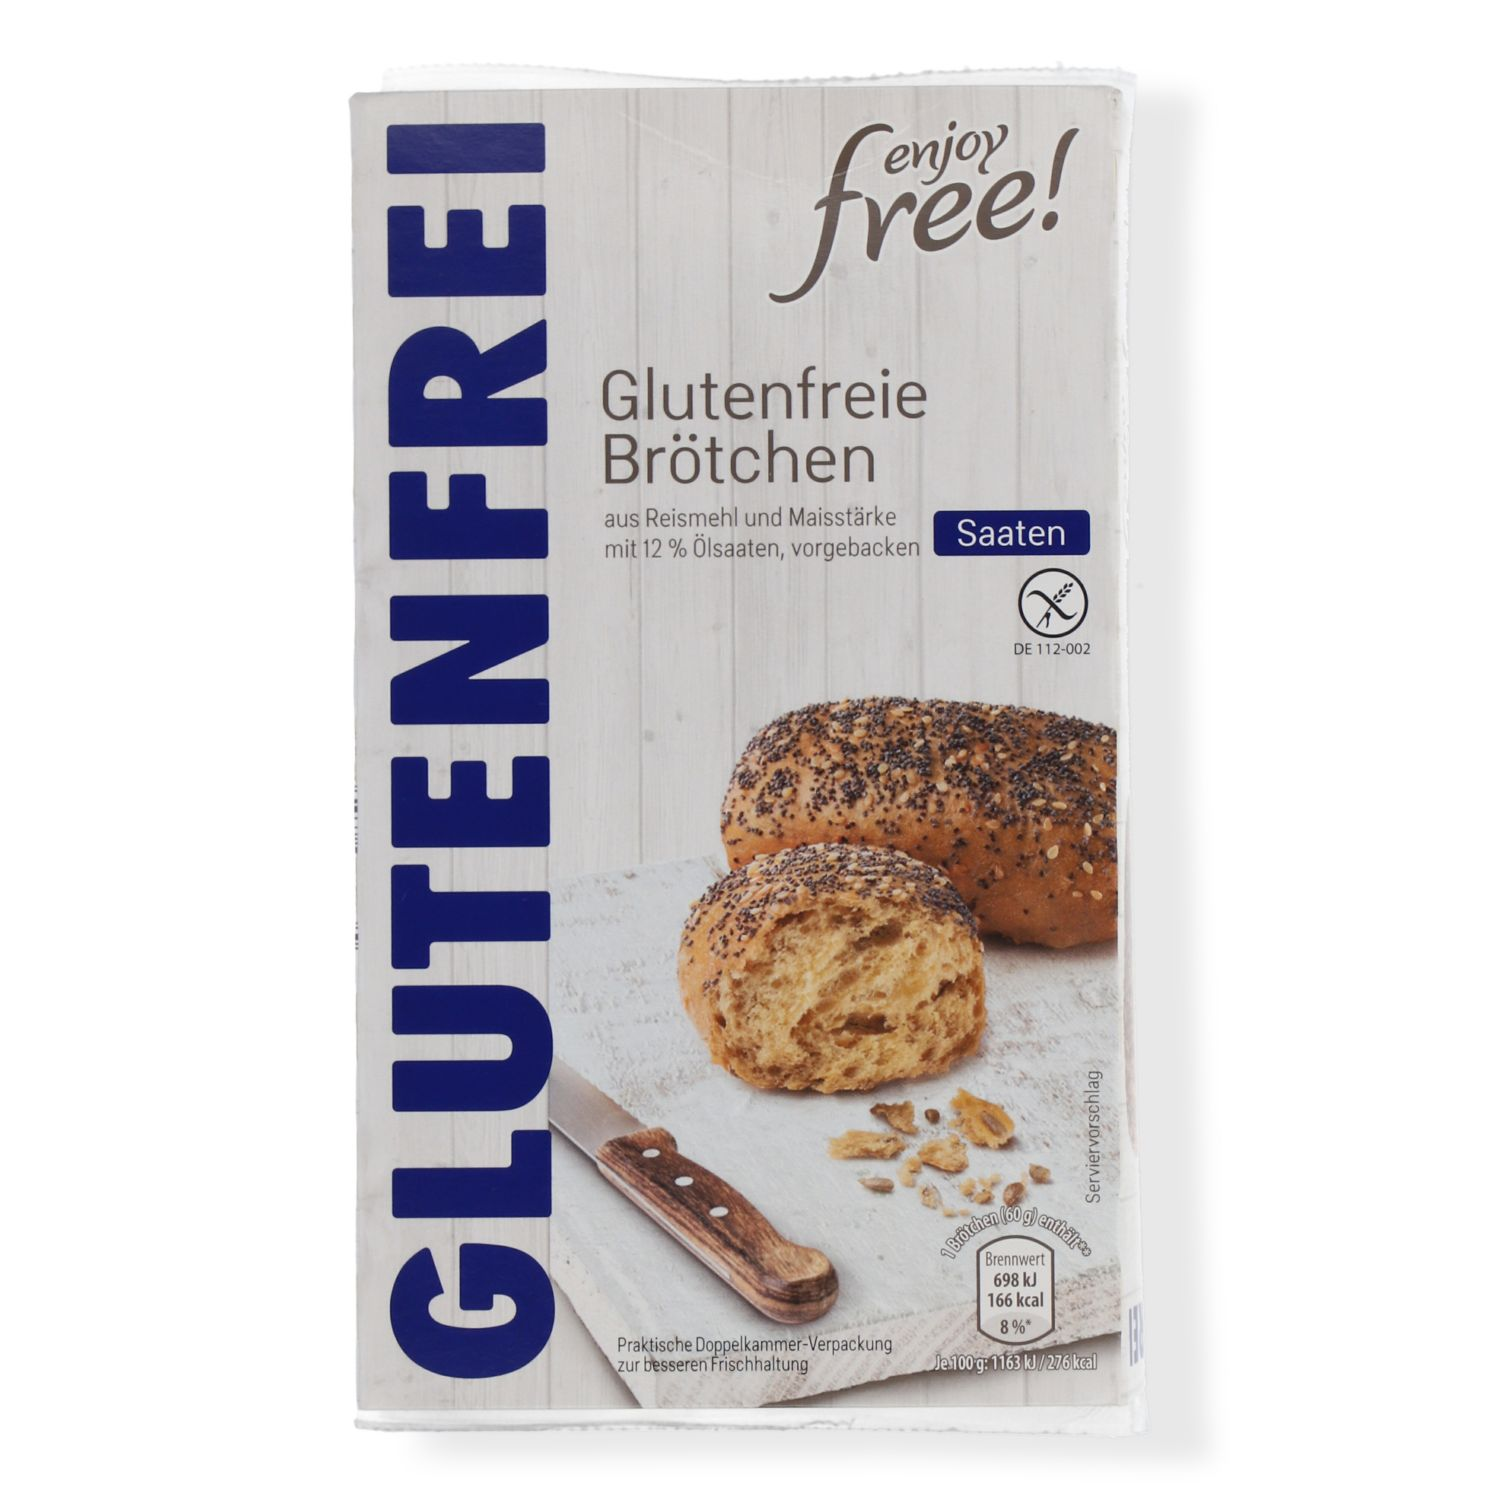 enjoy free! Glutenfreies Brot 400g